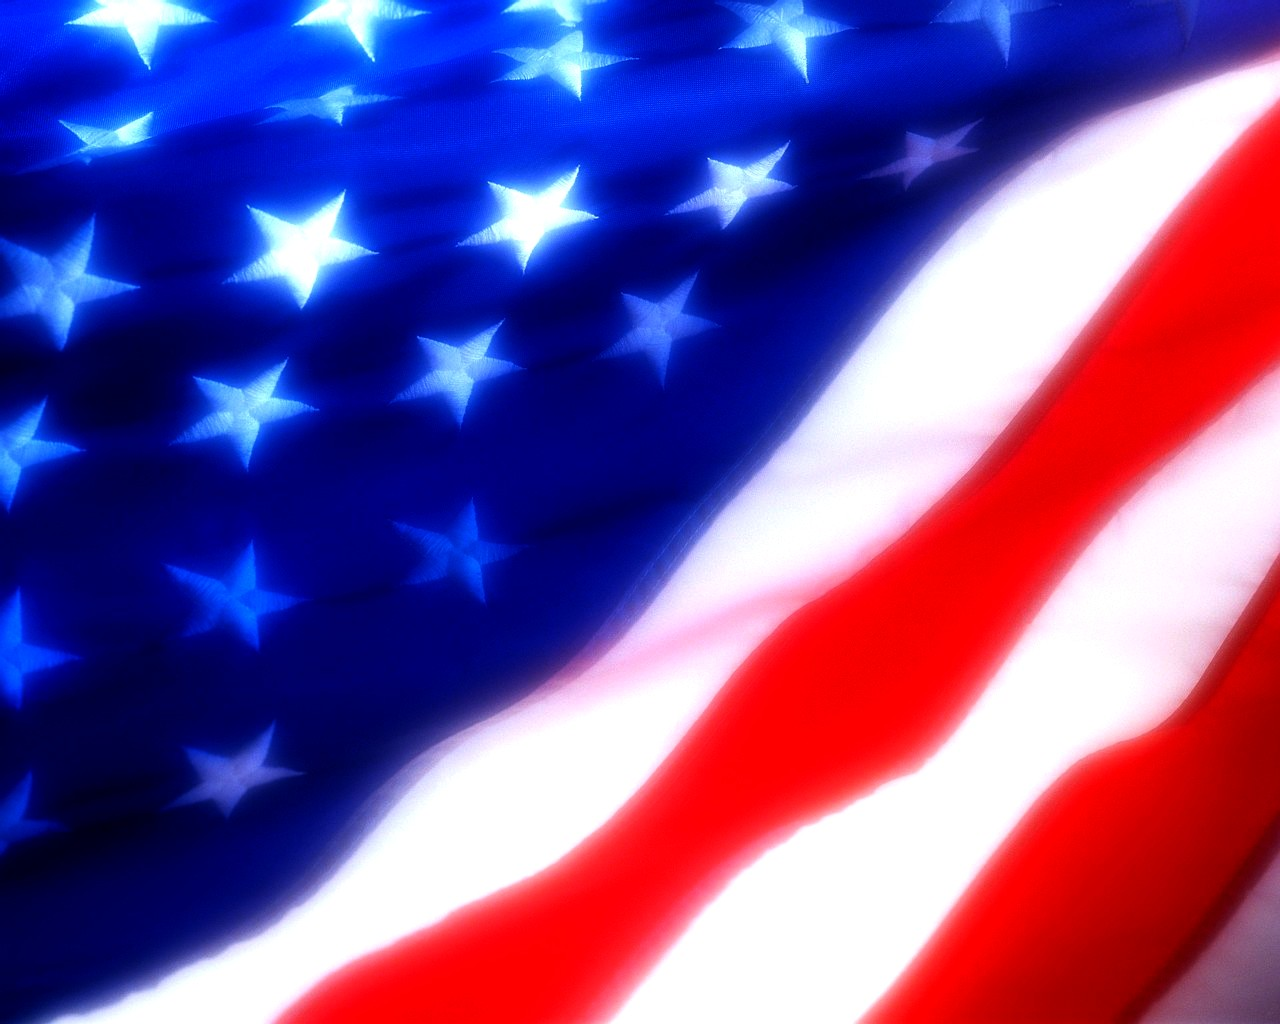 American Flag Powerpoint Background   HD Wallpapers 1280x1024